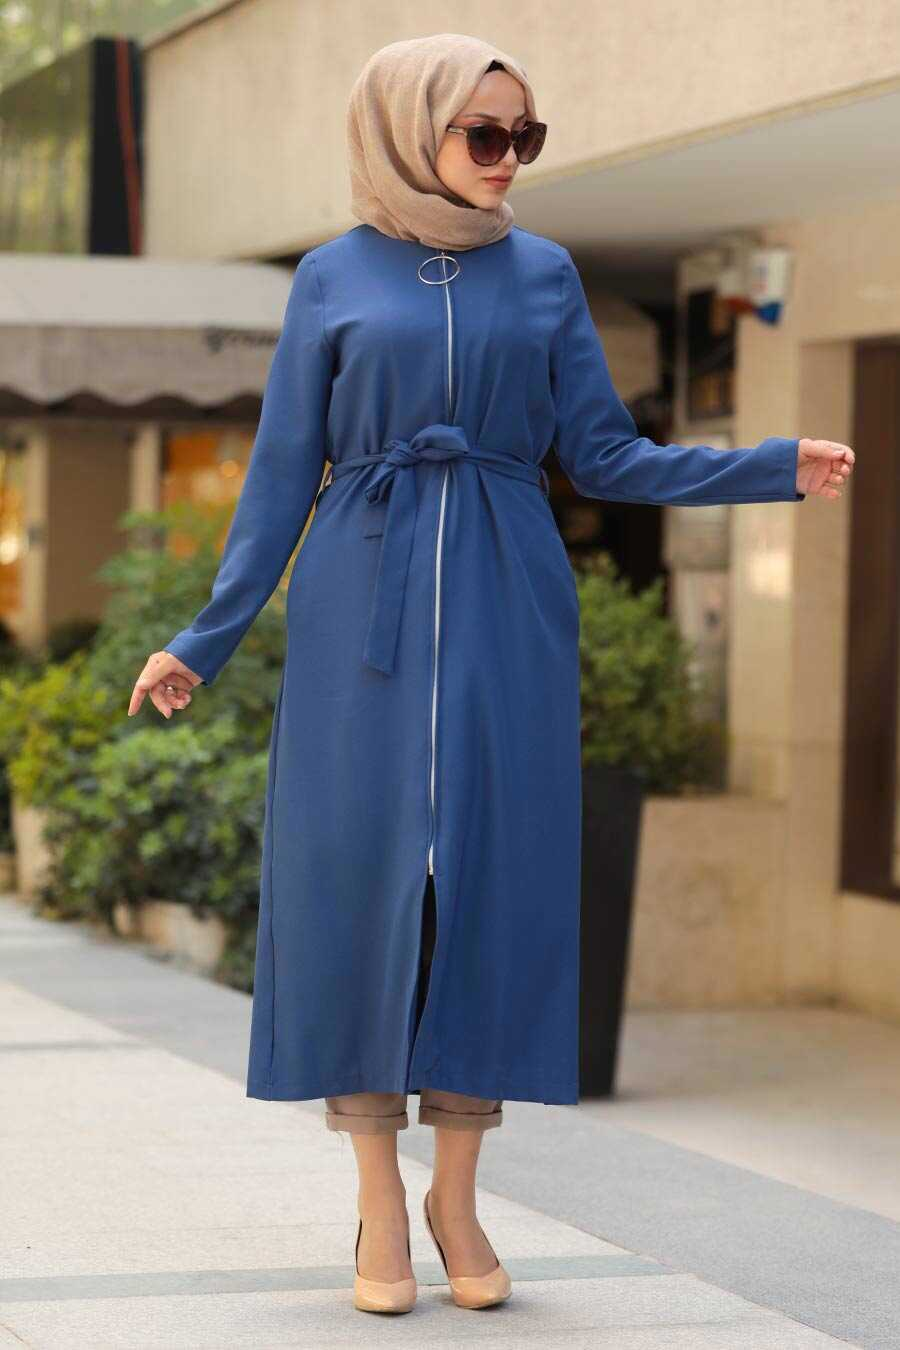 İndigo Blue Hijab Coat 5554IM